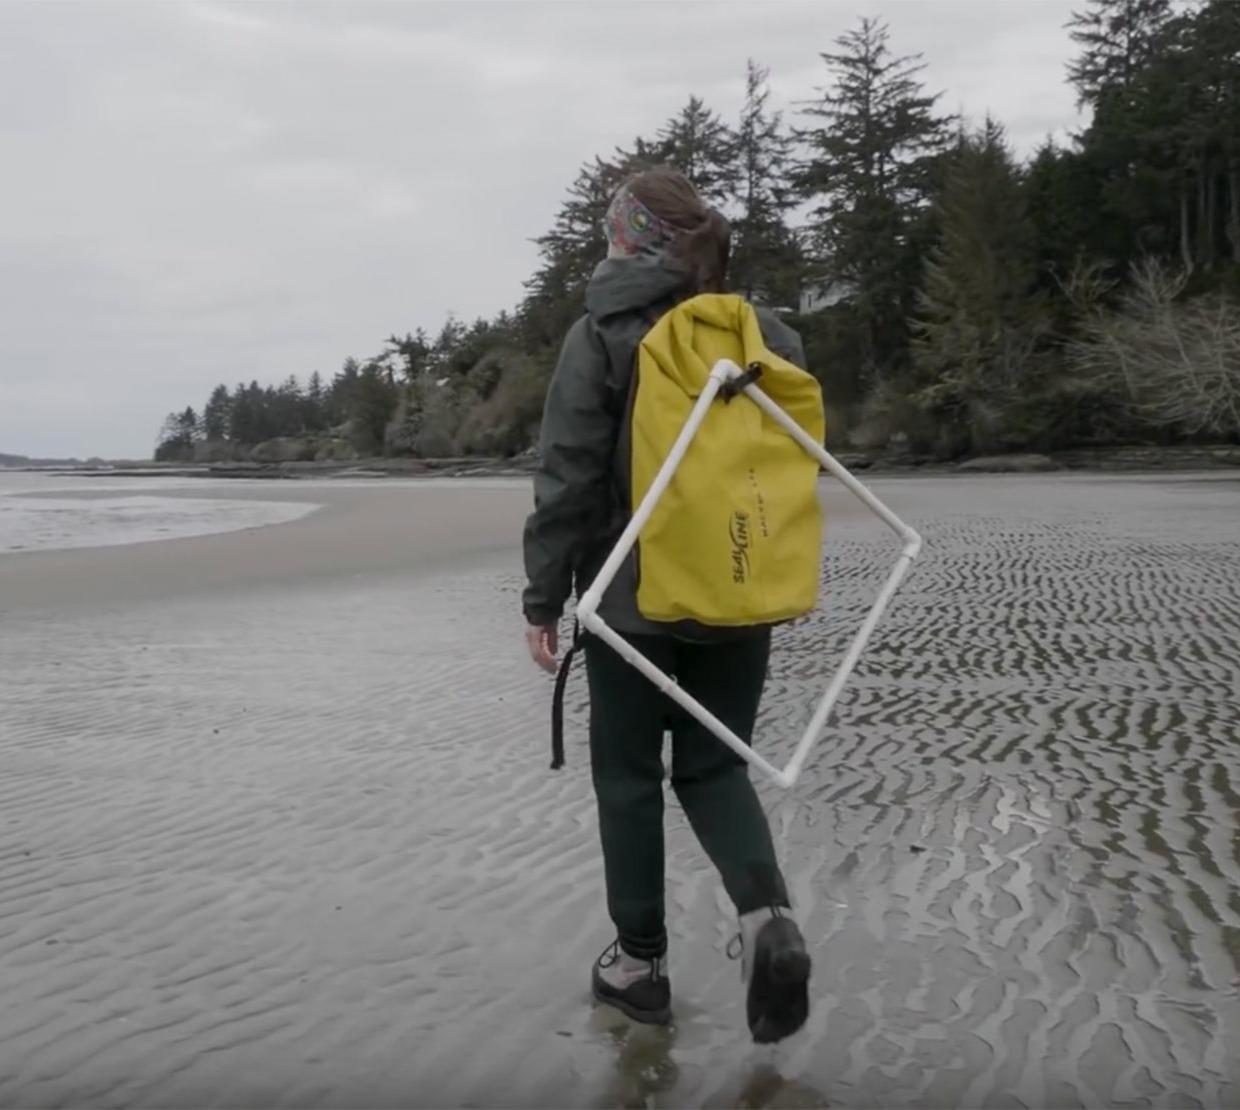 marine researcher walking on cloudy beach carrying hiking and research gear